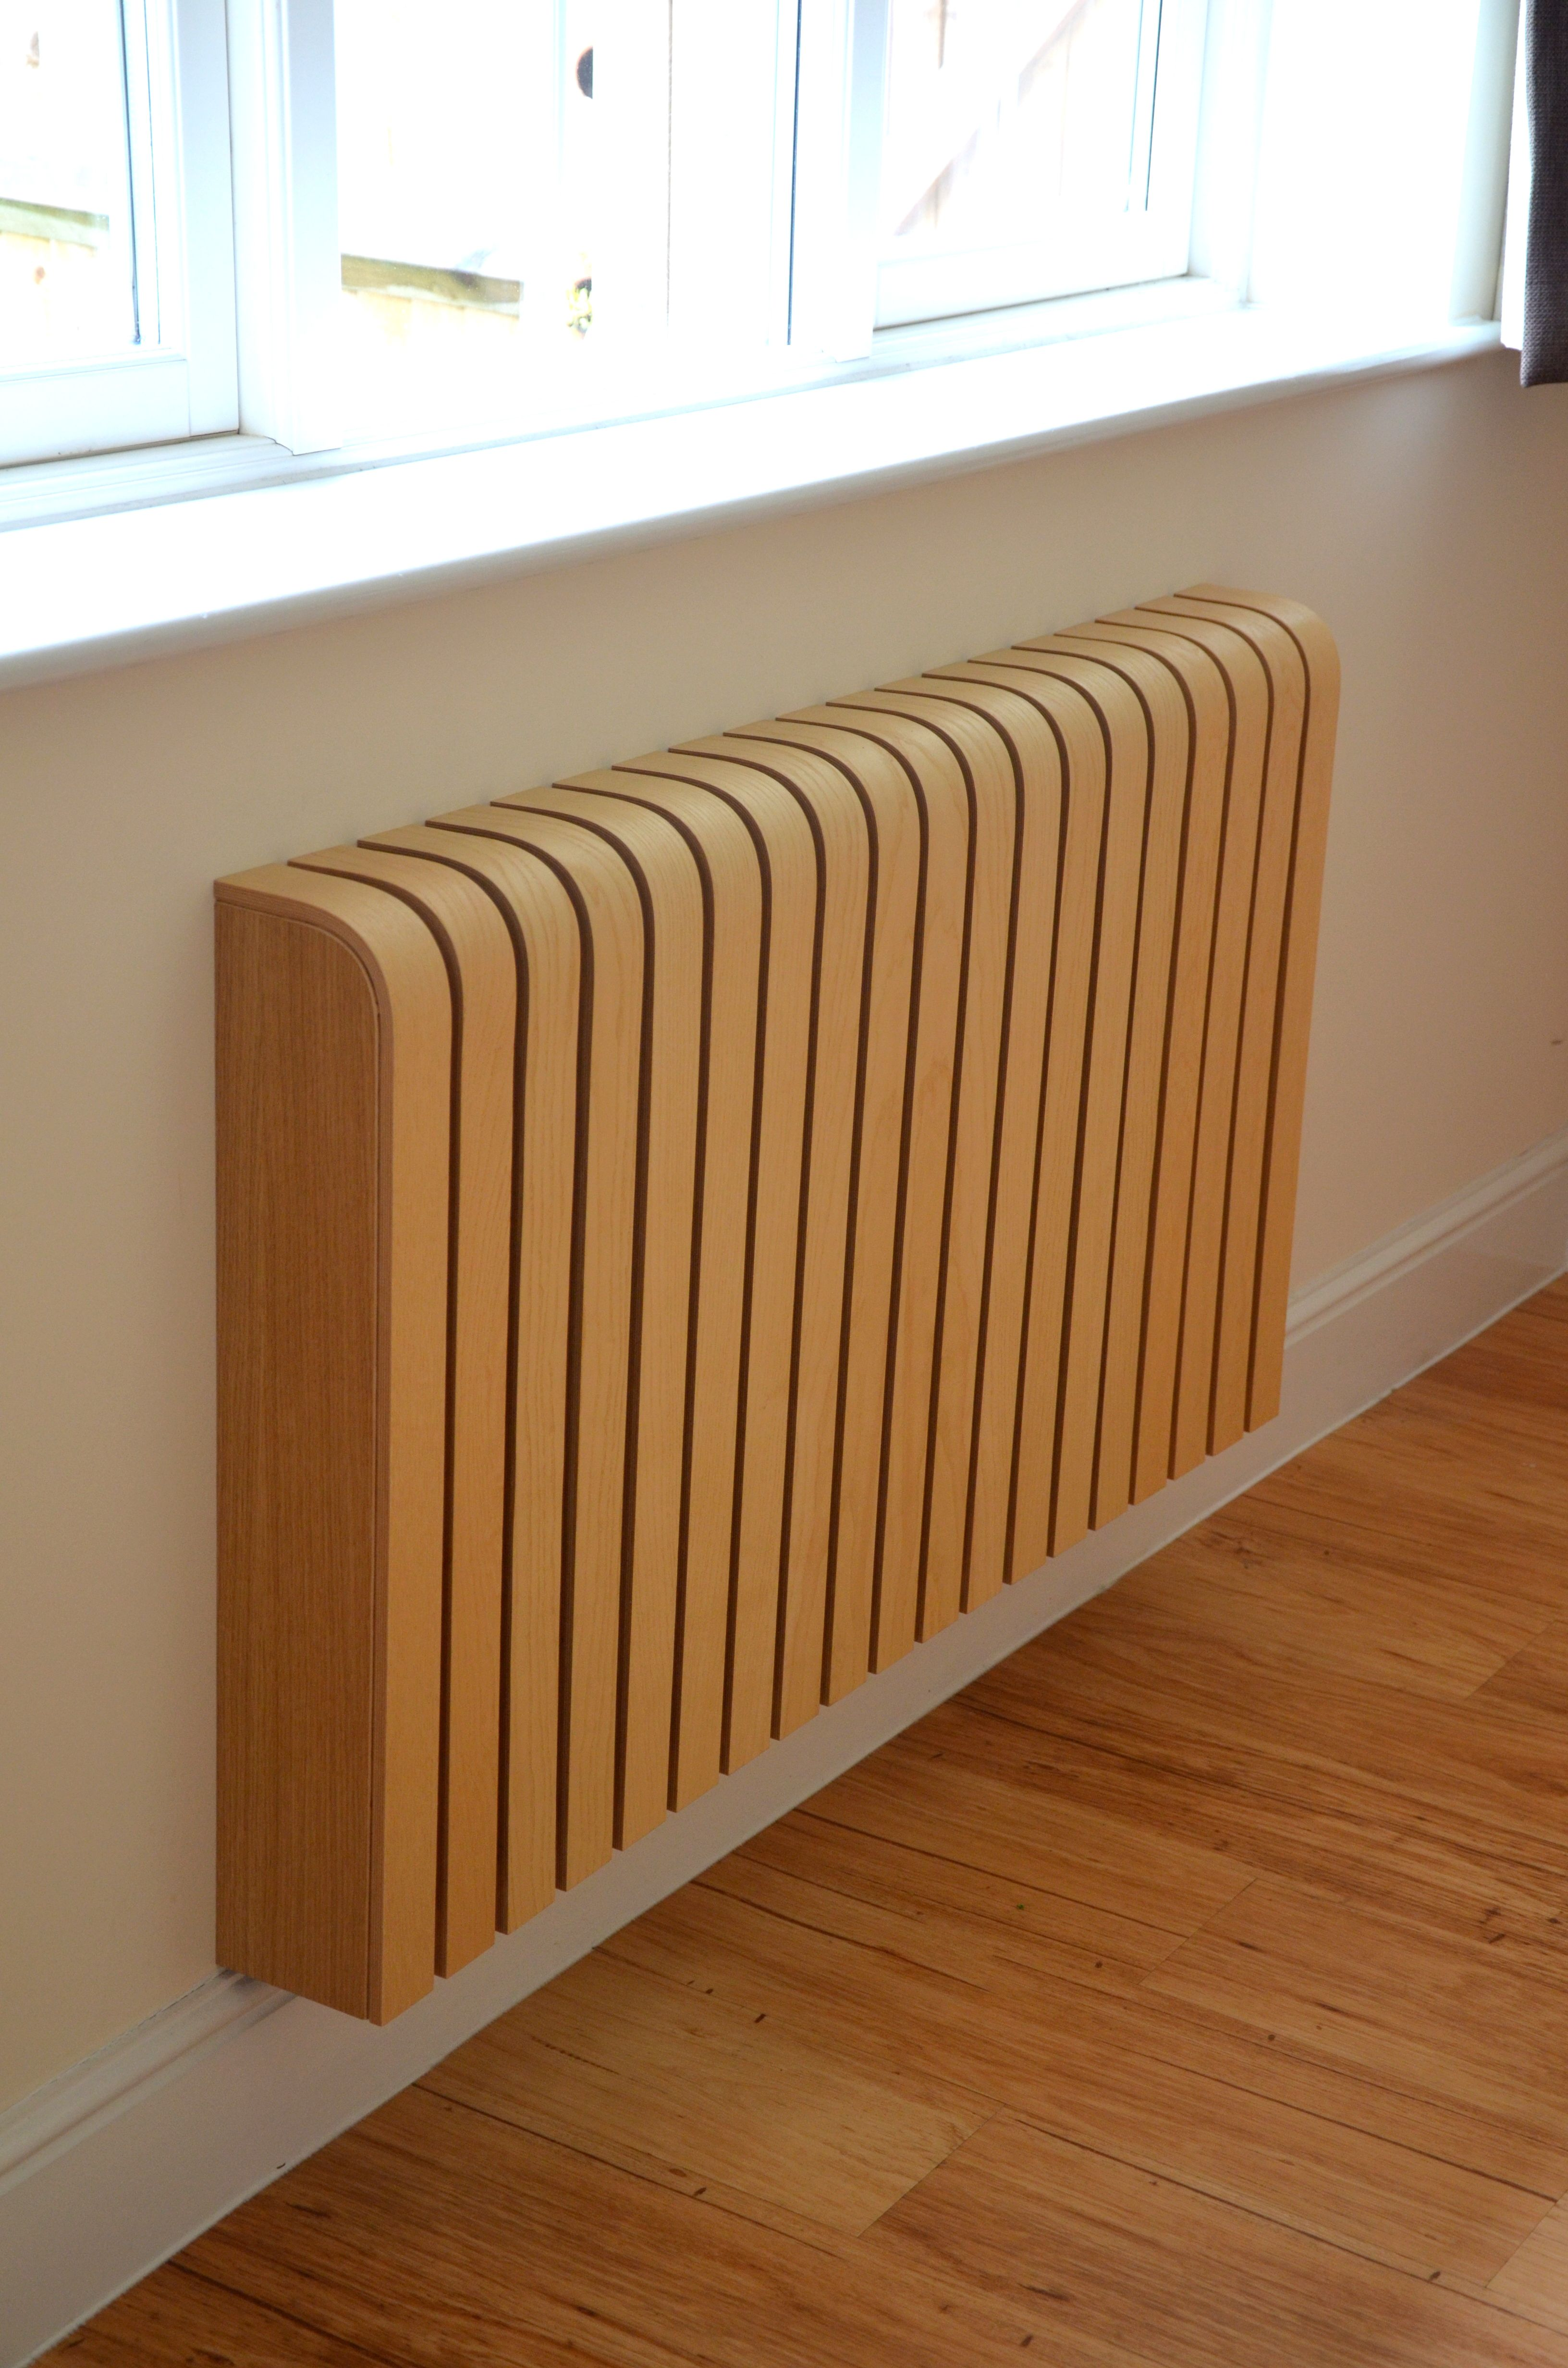 A cool radiator cover radiators pinterest - Cache radiateur ikea ...